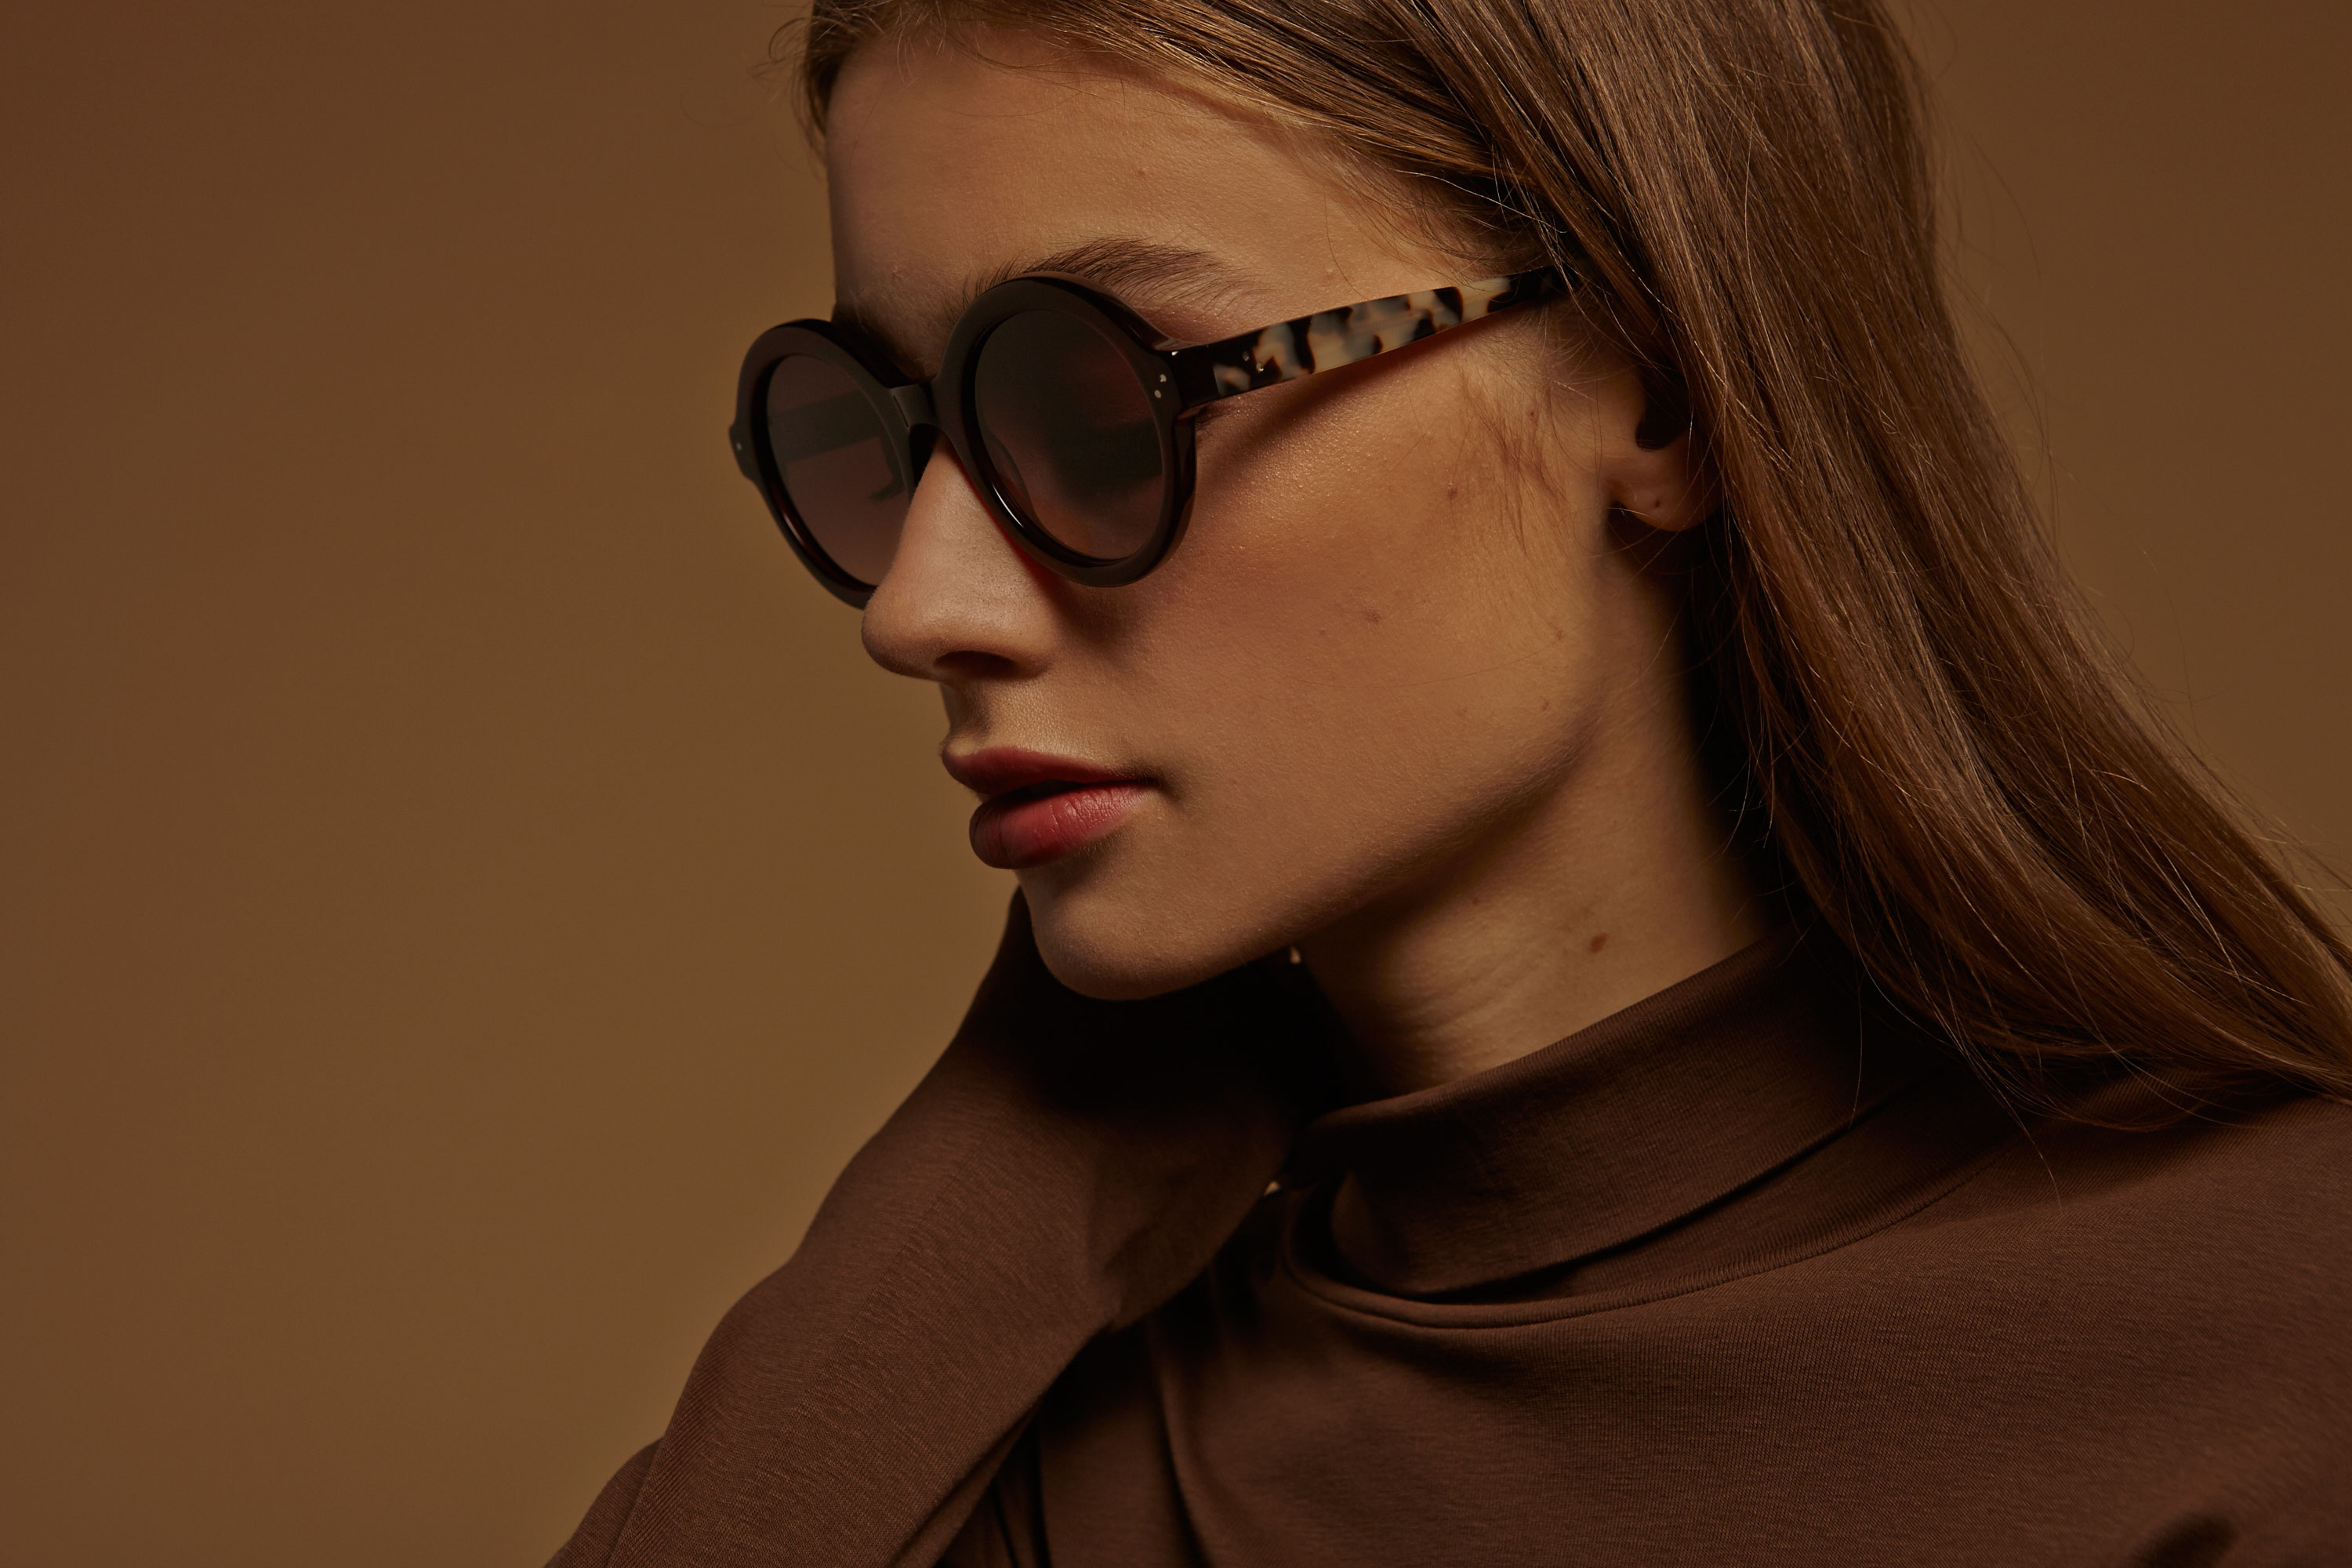 Bianca acetate rounded red sunglasses by GIGI Studios